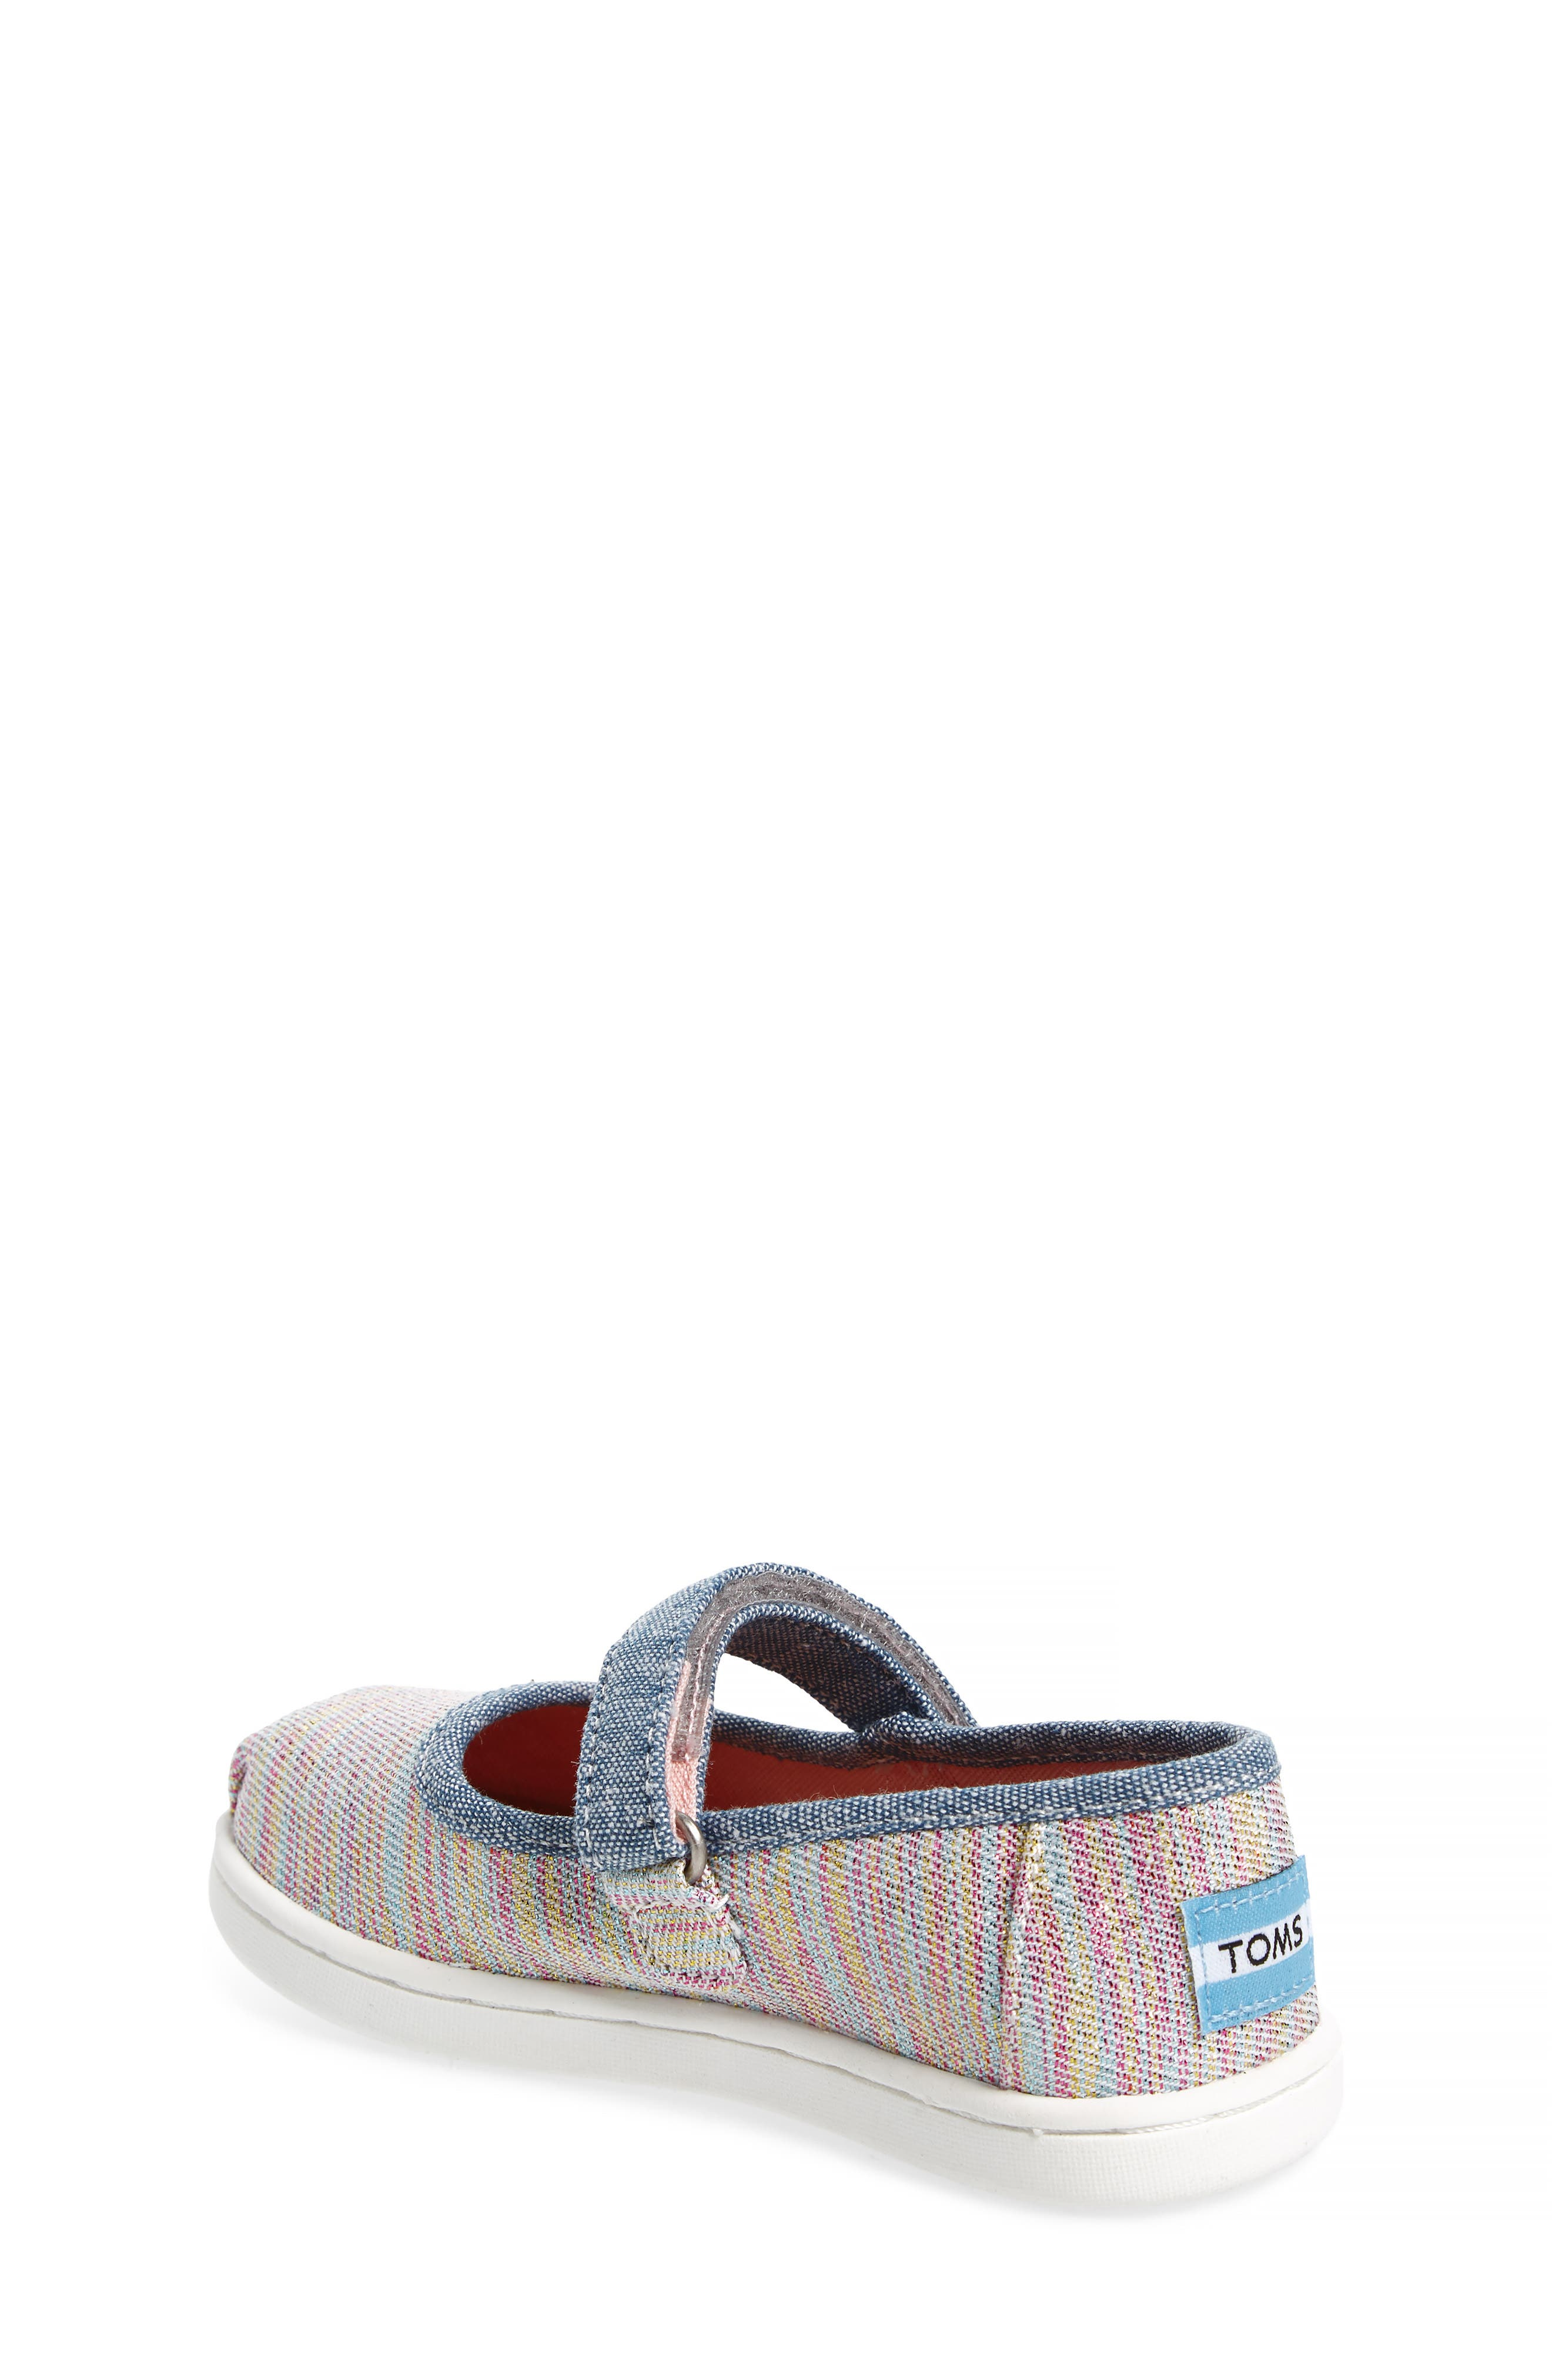 Mary Jane Sneaker,                             Alternate thumbnail 2, color,                             PINK MULTI TWILL GLIMMER